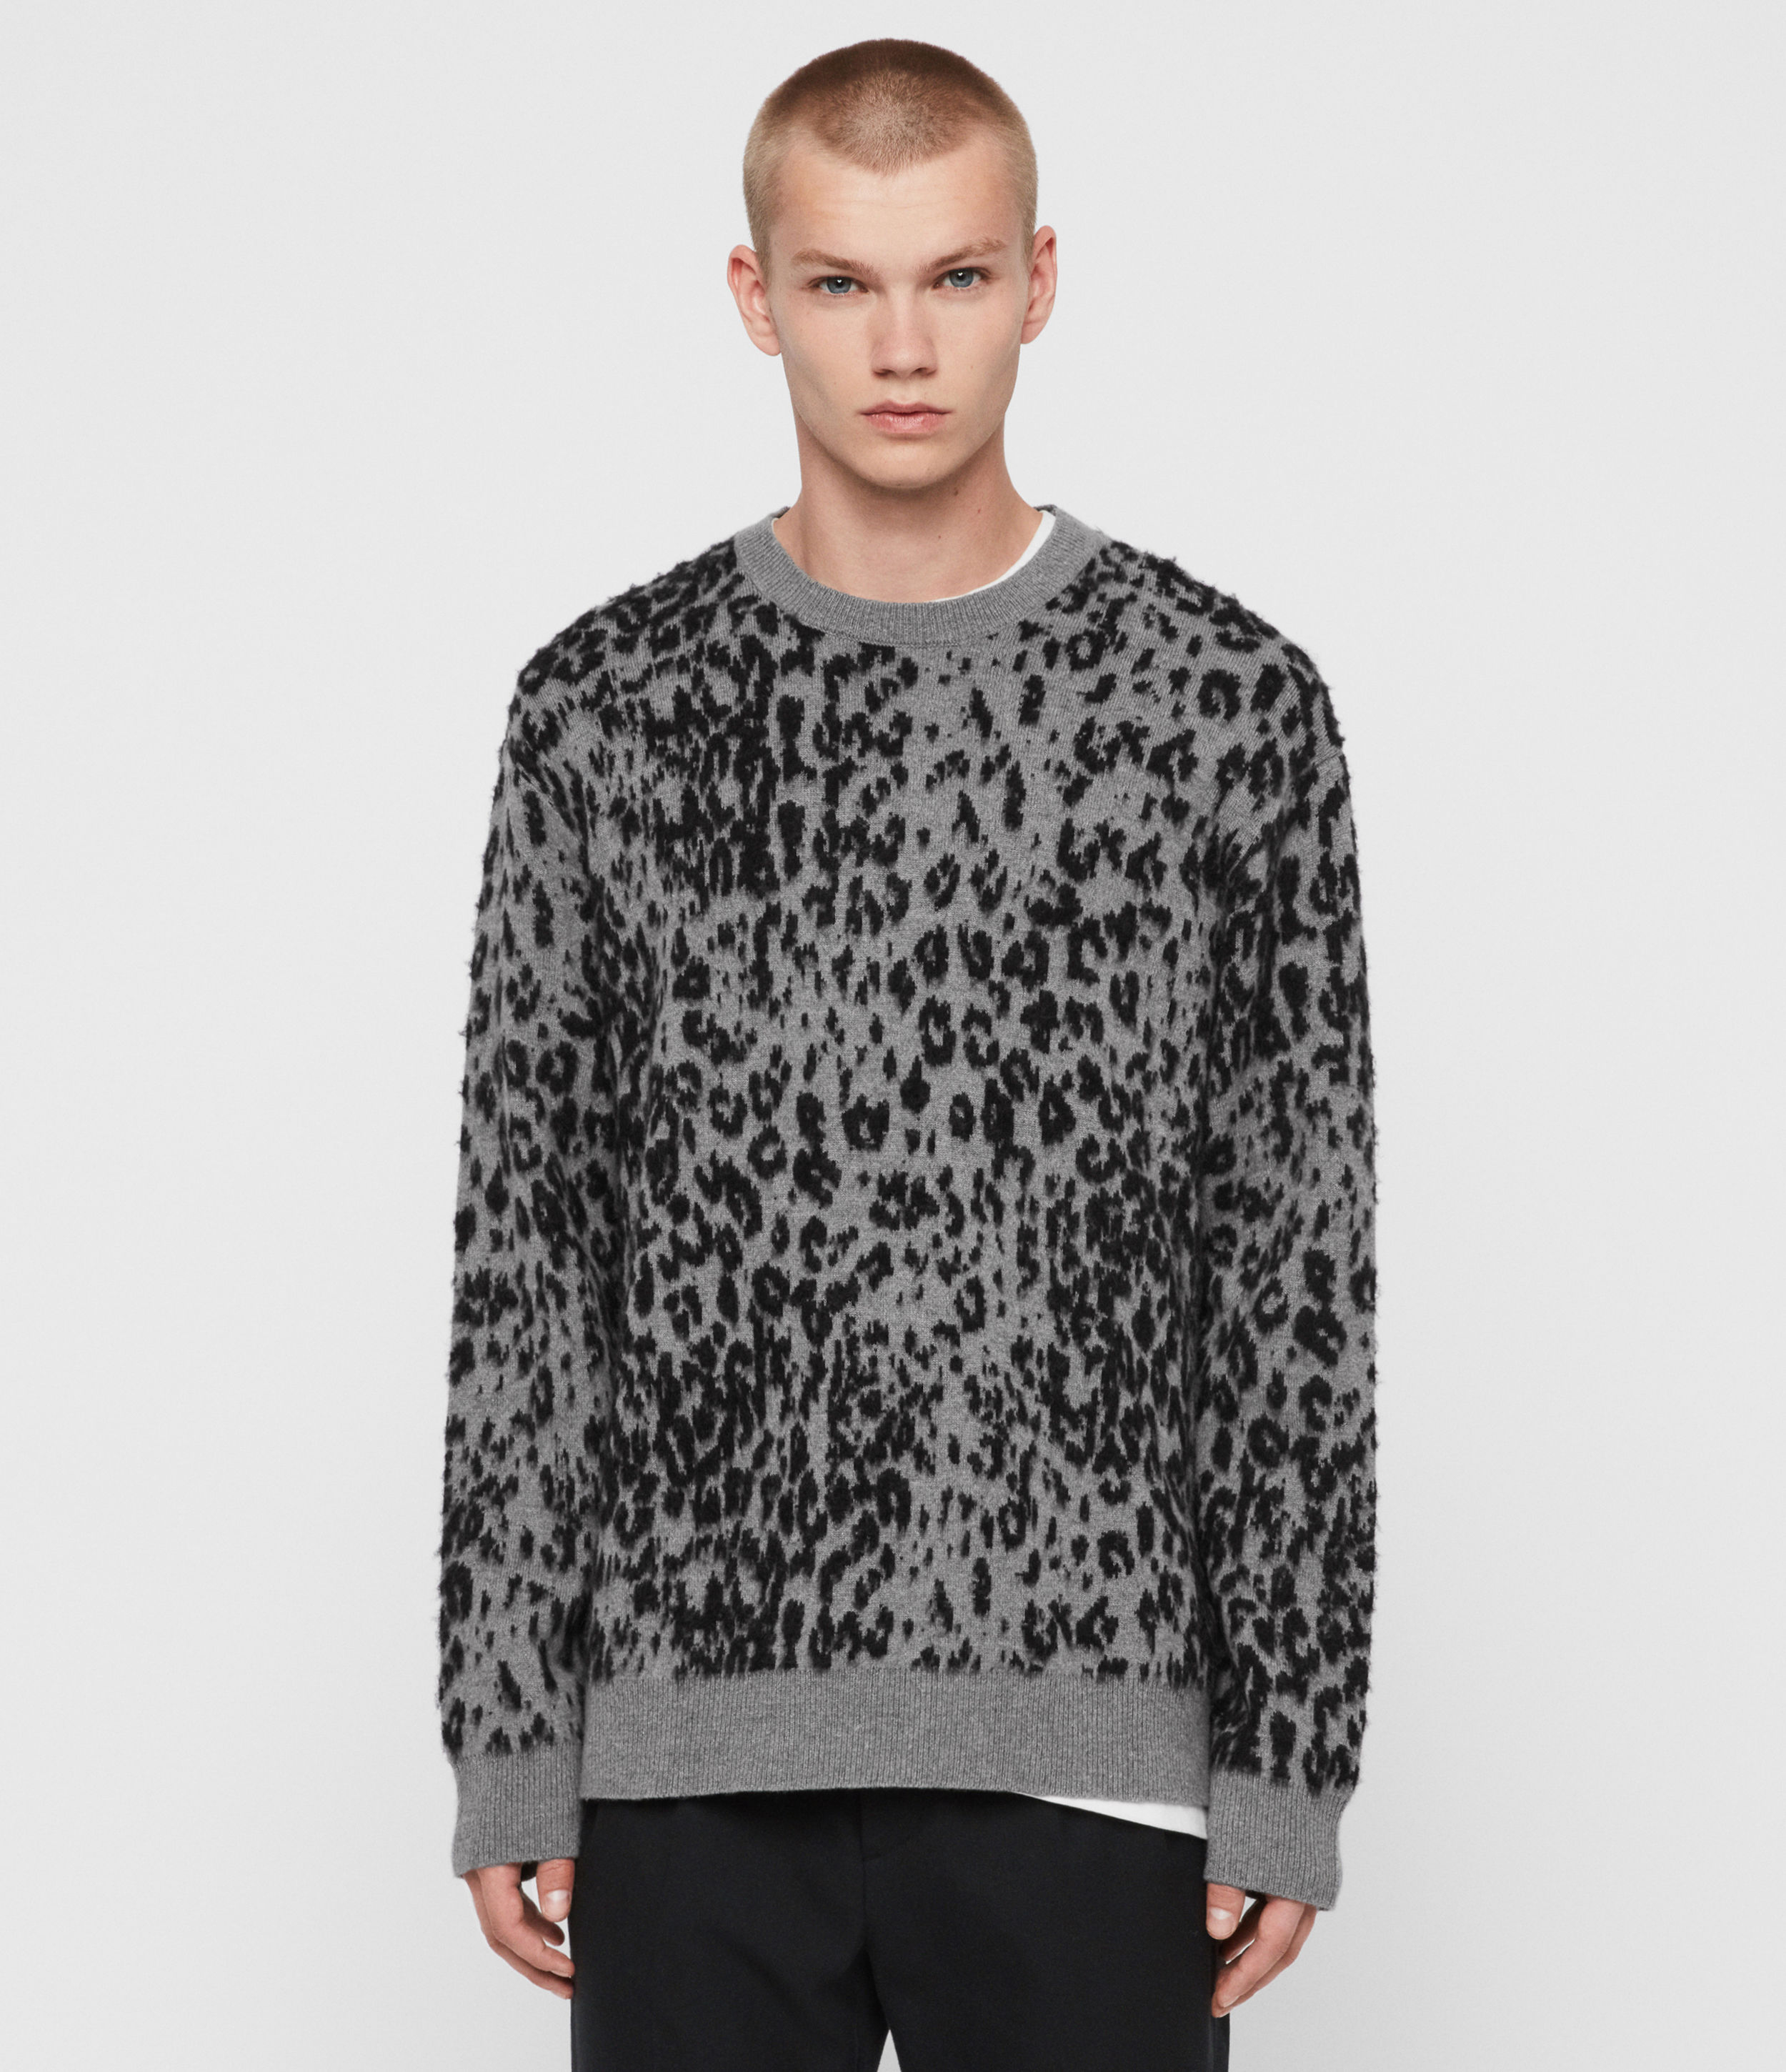 AllSaints Men's Wool Leopard Print Relaxed Fit Wildcat Crew Jumper, Grey and Black, Size: M